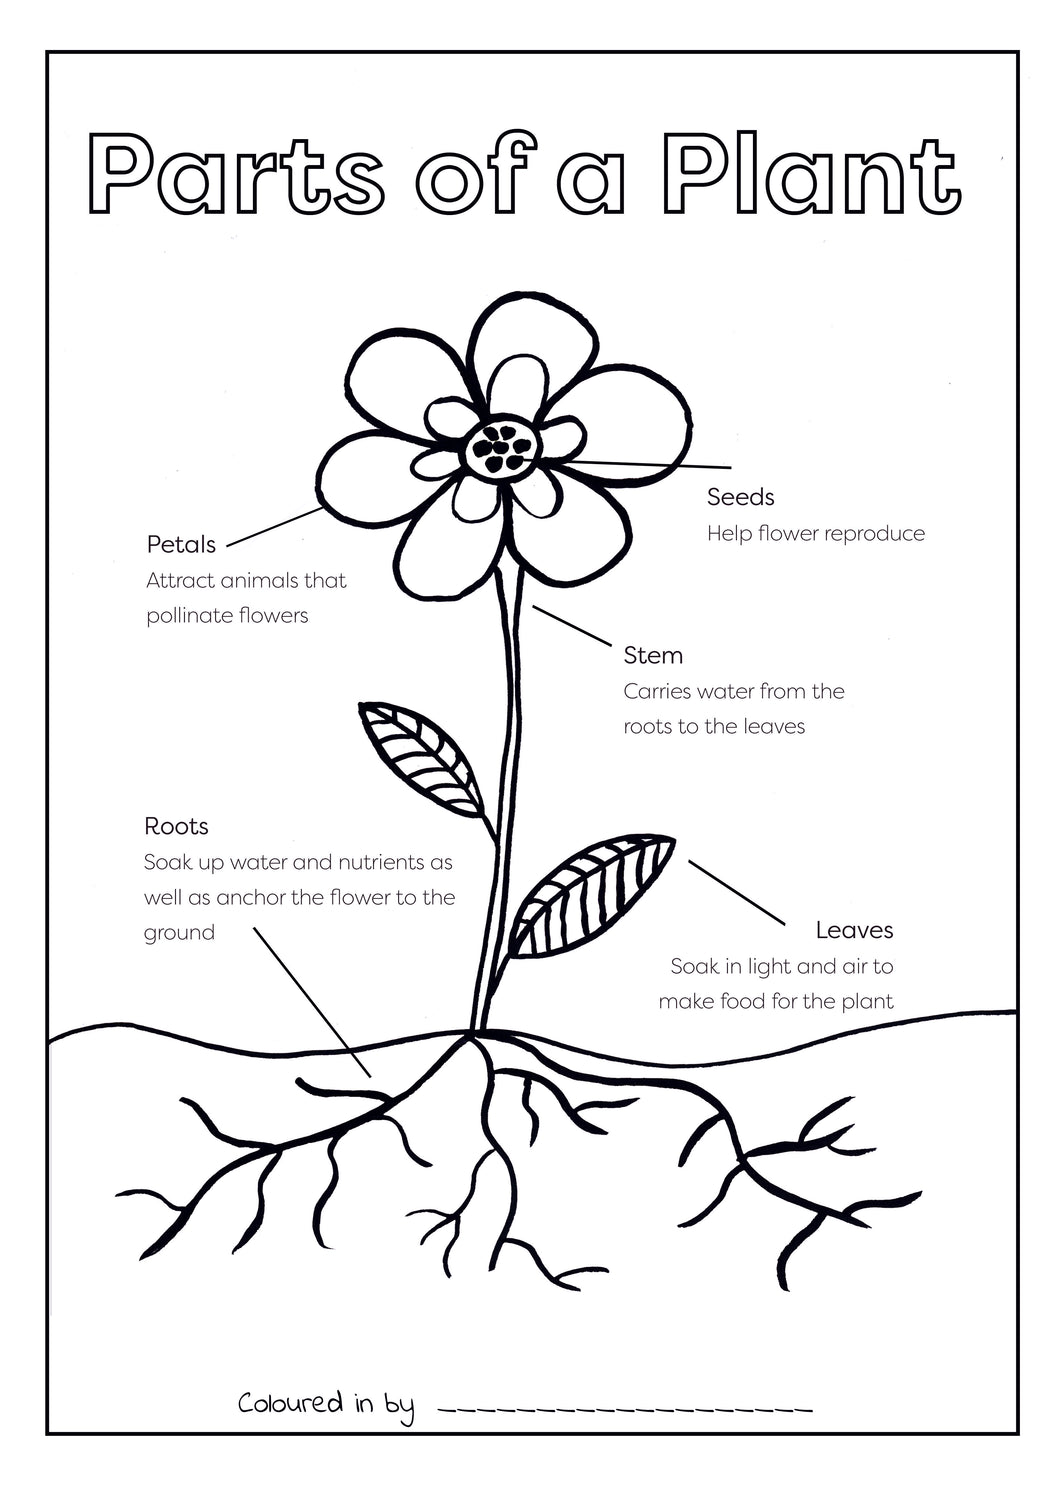 FREE Parts of a Plant Colouring Printable